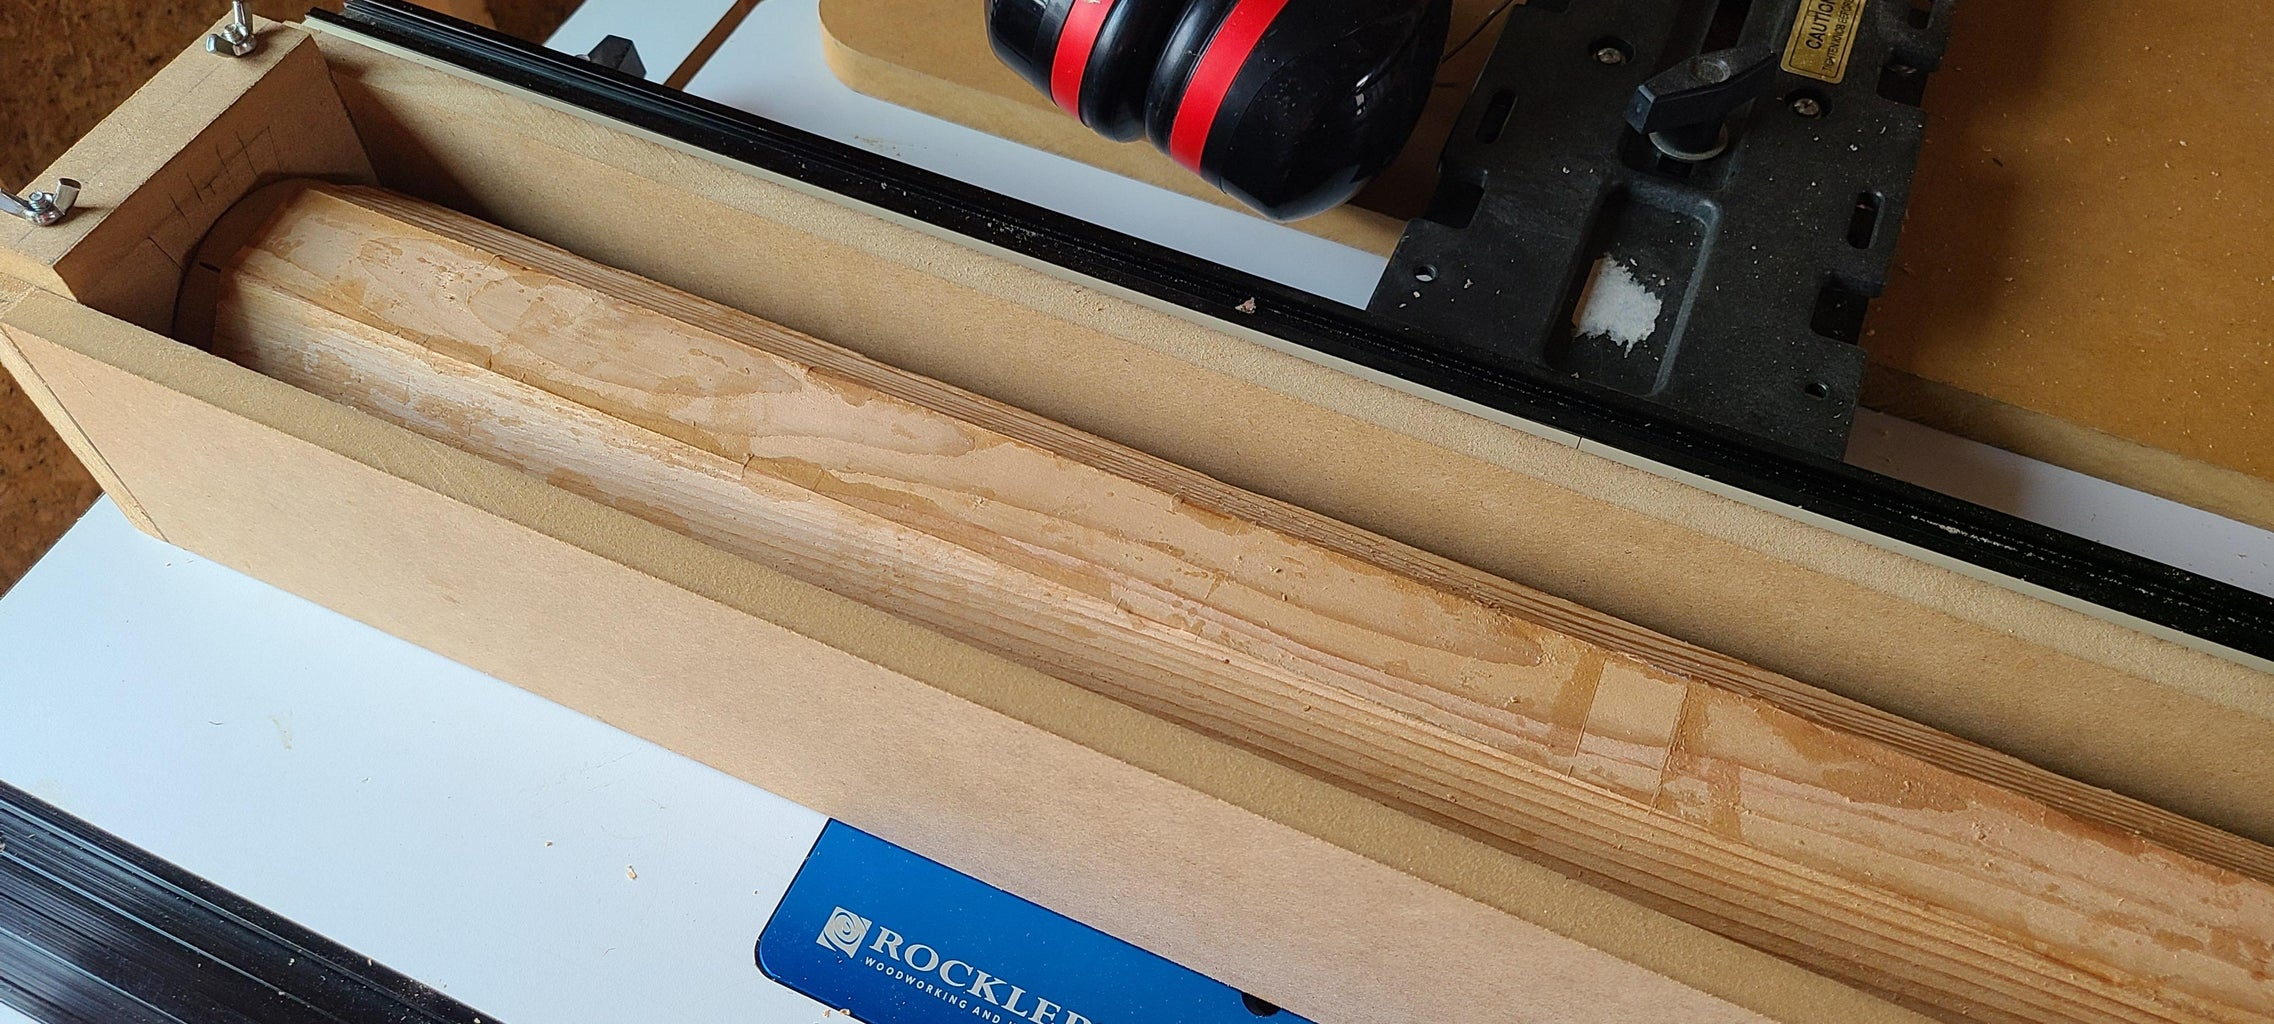 Using the Cylinder Jig